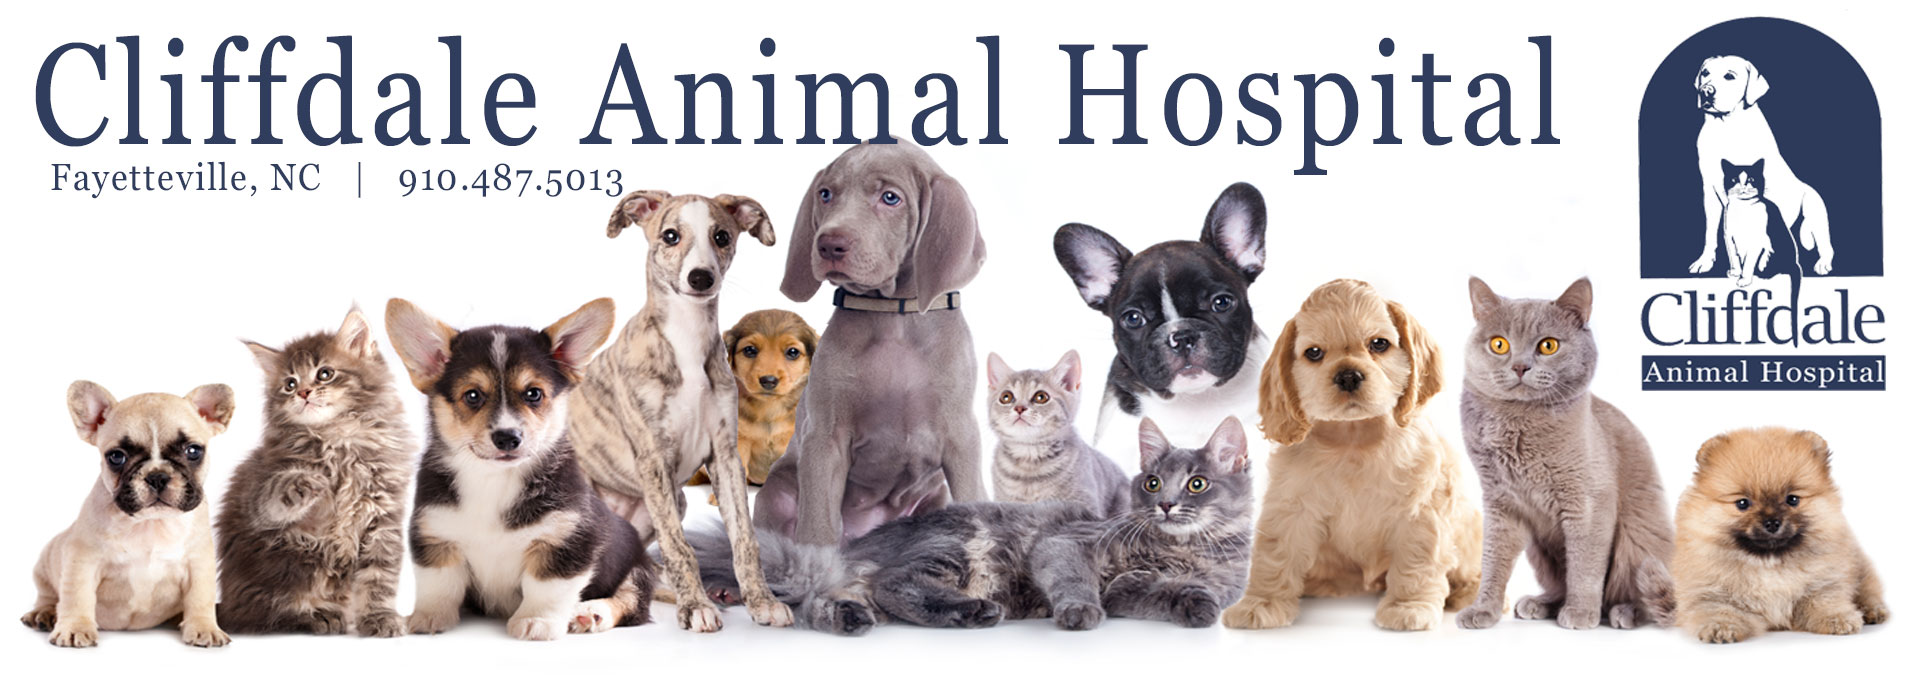 Pet Care Staff Fayetteville, NC | Cliffdale Animal Hospital